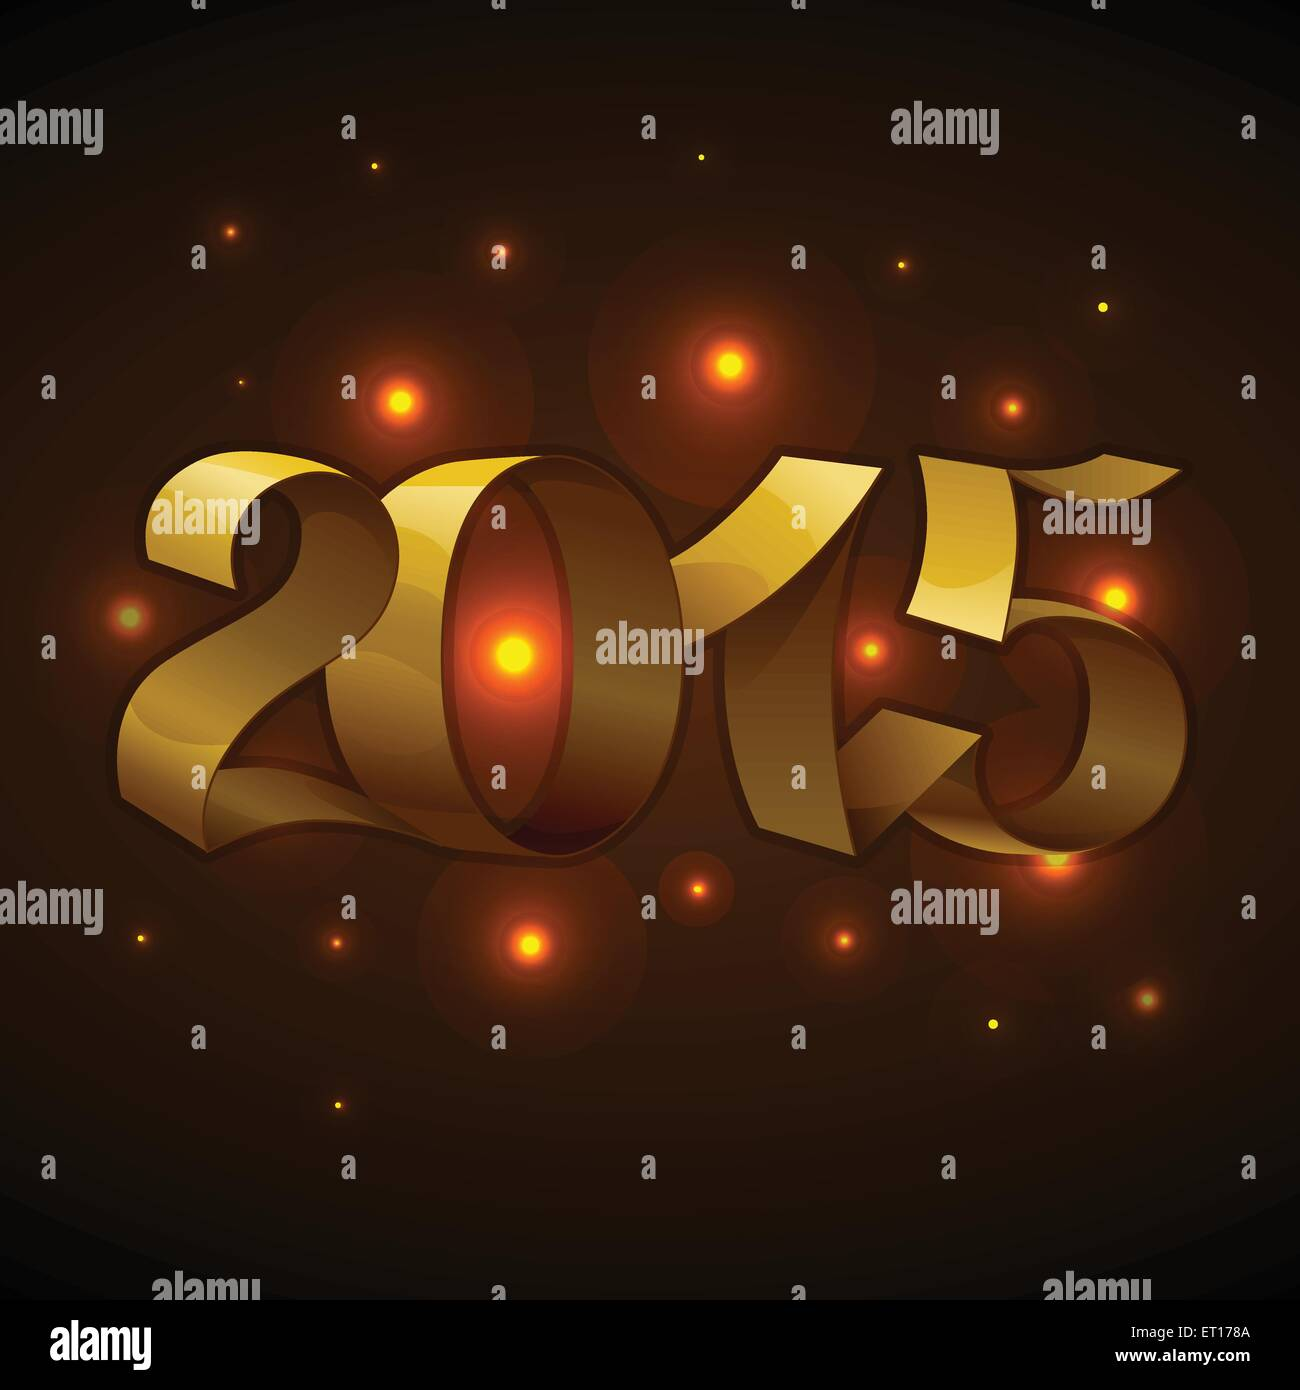 Isolated golden shiny ribbons text 2015 on brown background with stars. RGB EPS 10 vector illustration - Stock Image